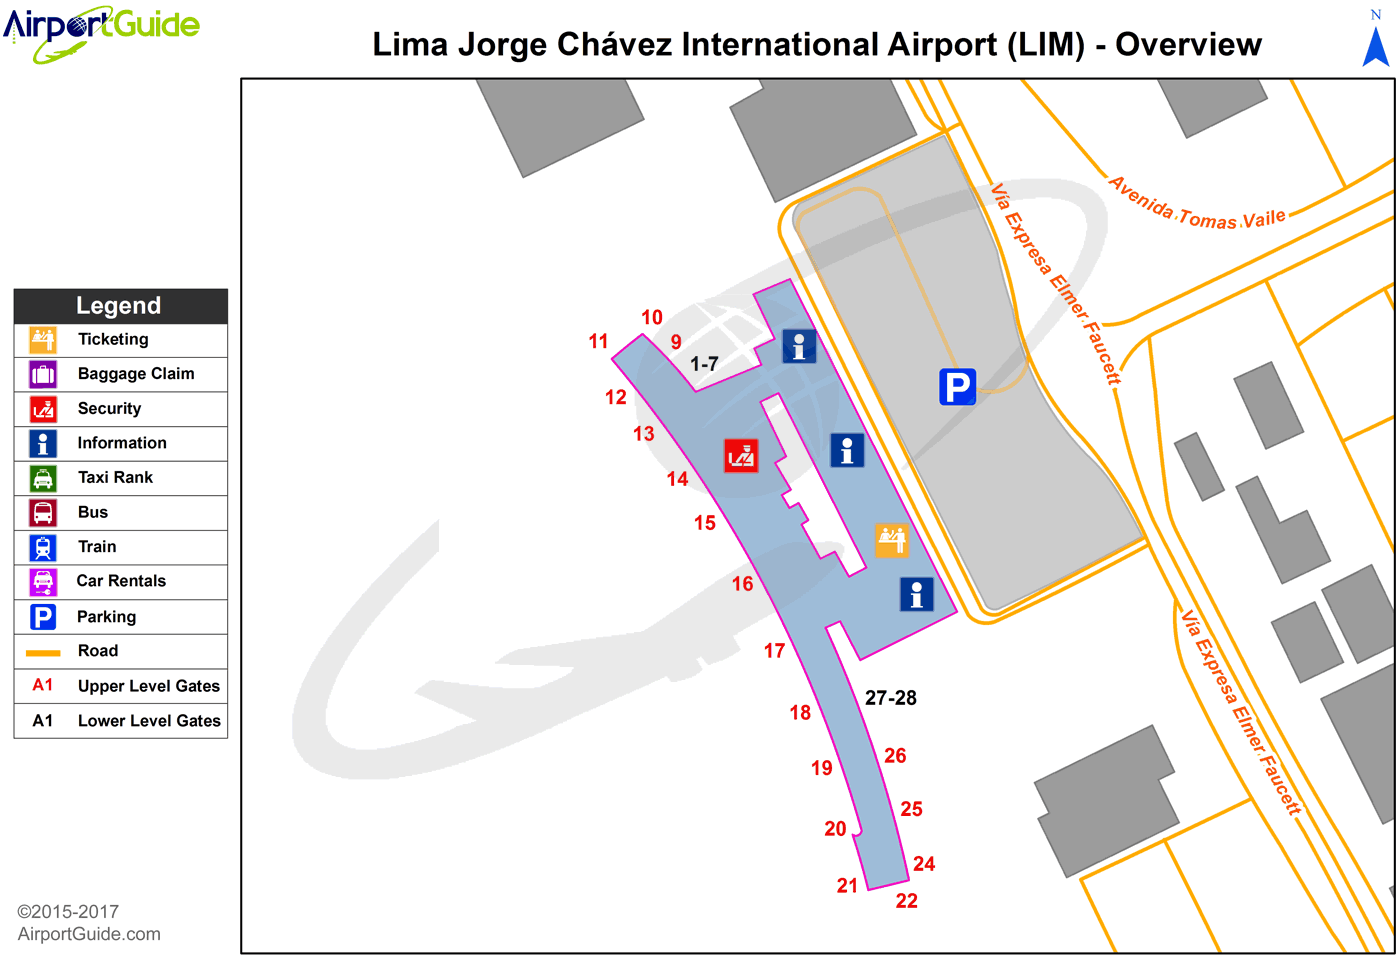 Lima Jorge Chavez International Lim Airport Terminal Map Overview Airport Guide Airport Map